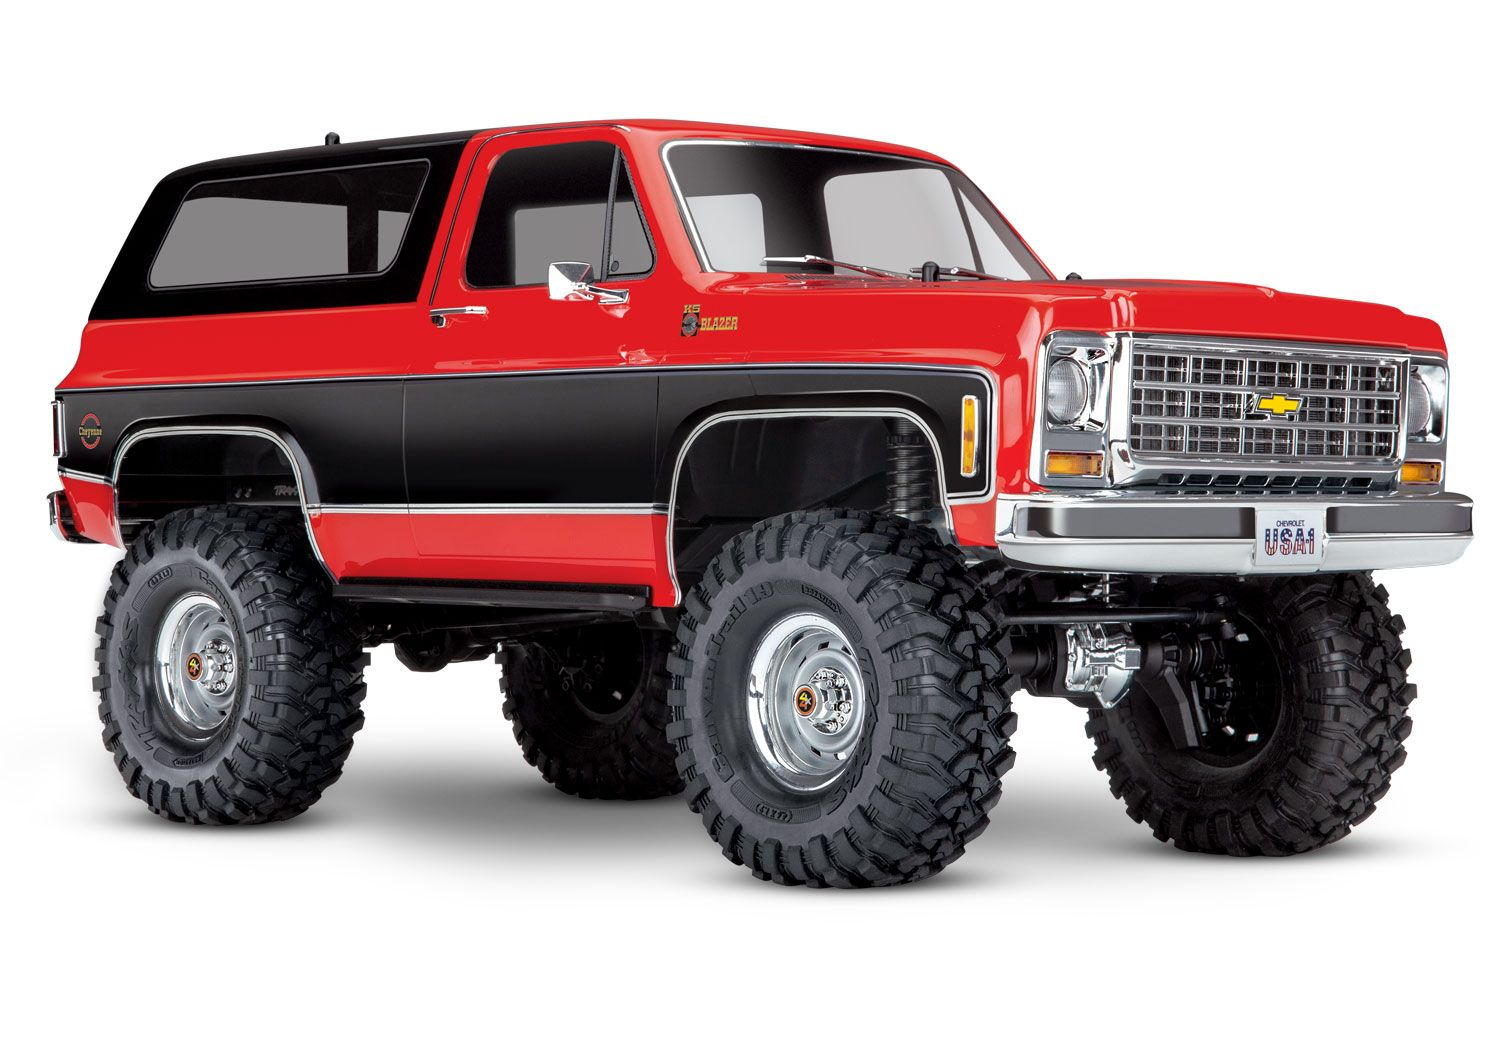 This Rc Chevy Blazer From Traxxas Is A Gift We D Make To Ourselves Top Speed Chevrolet Blazer Traxxas Rc Trucks